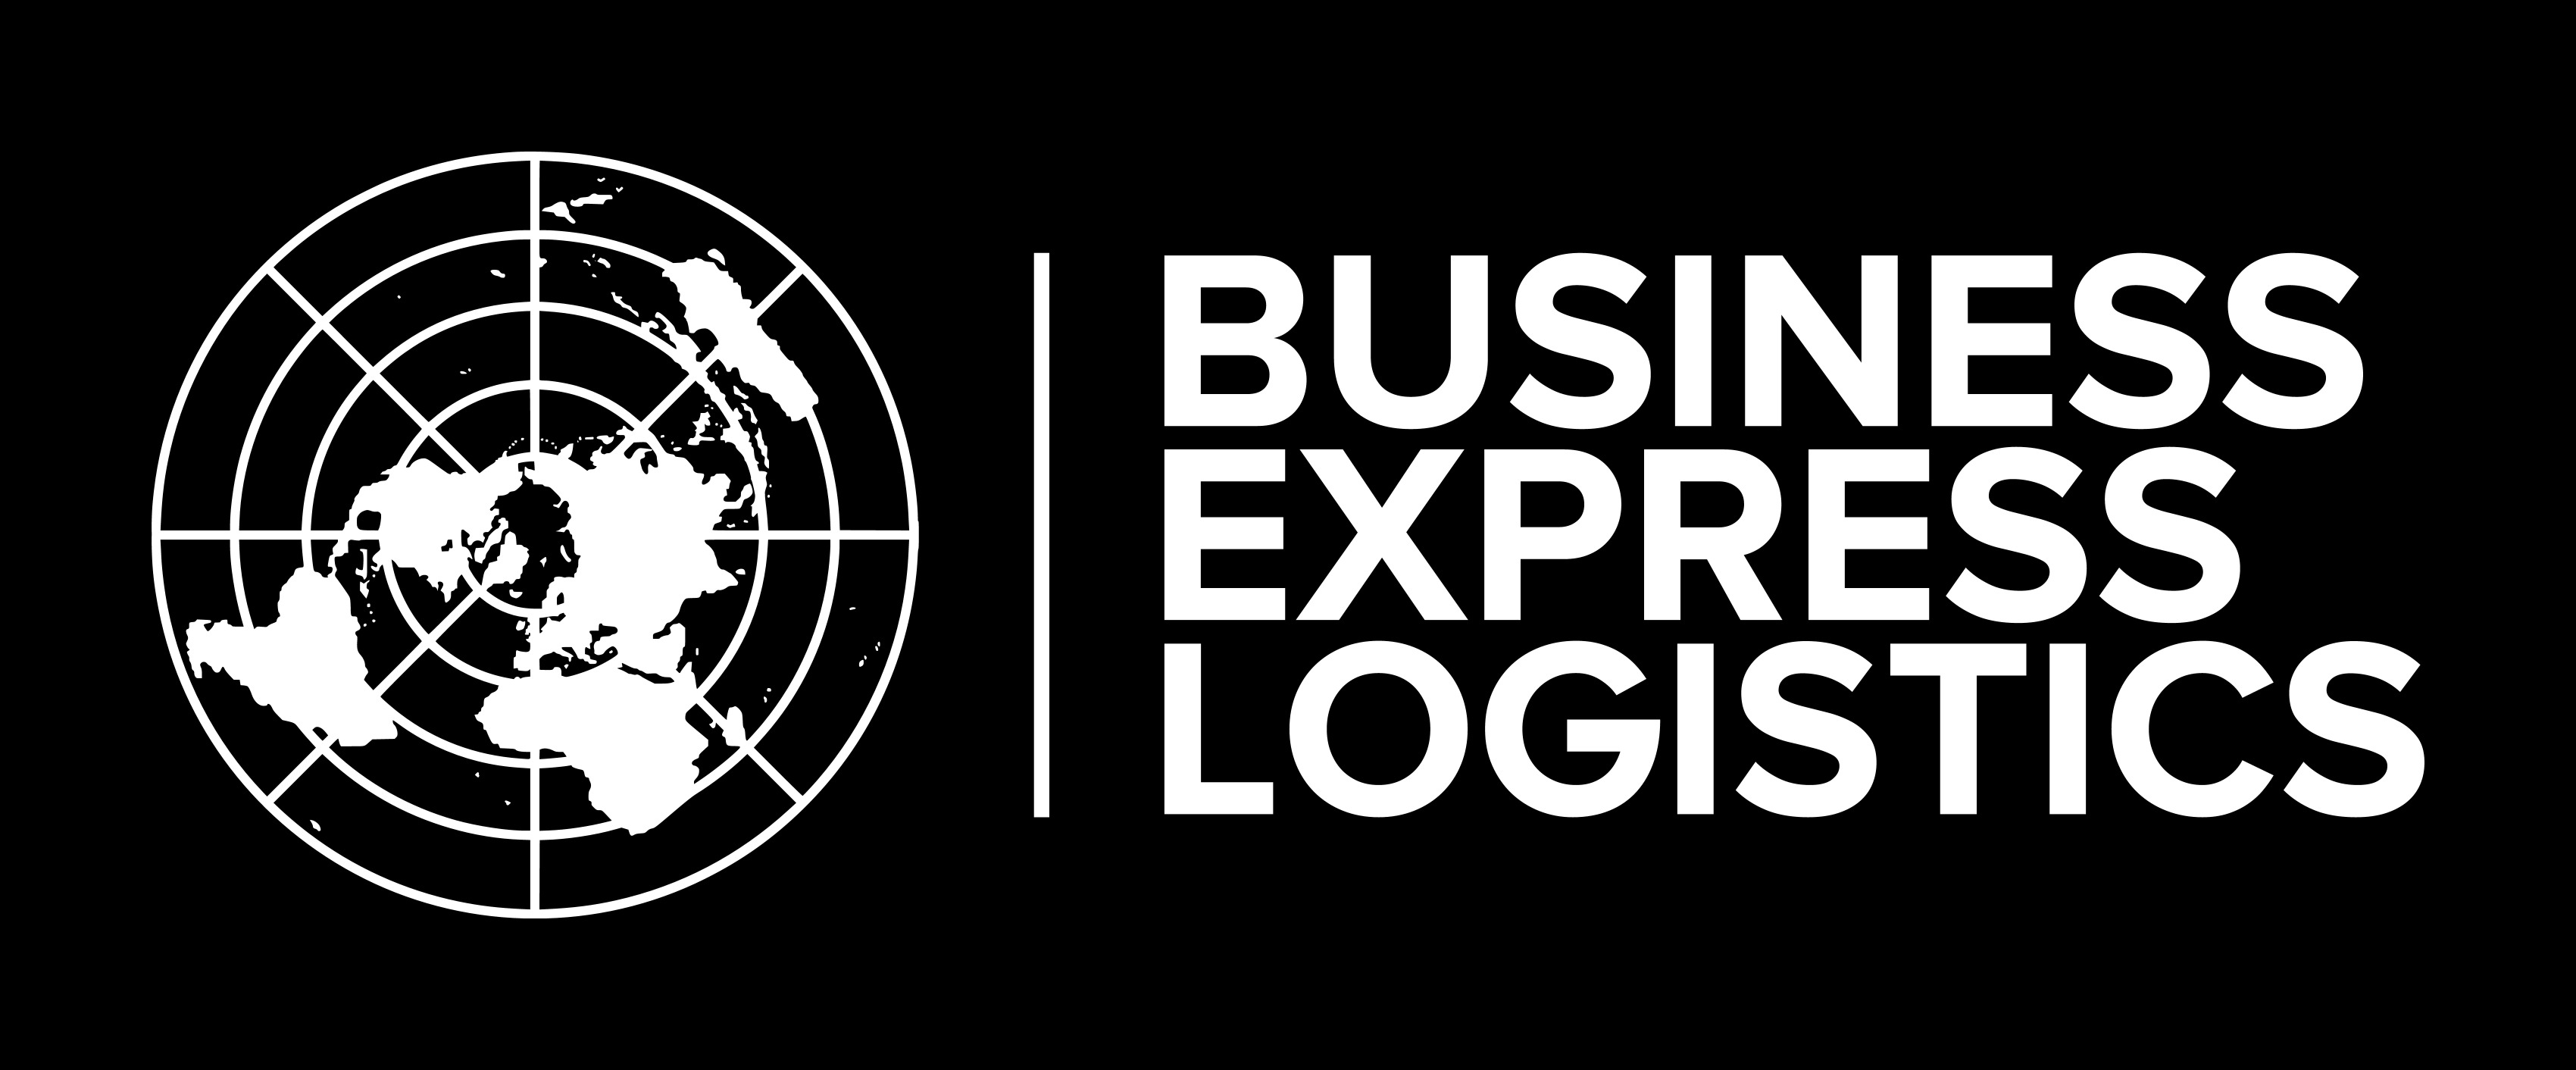 Business Express Logistics